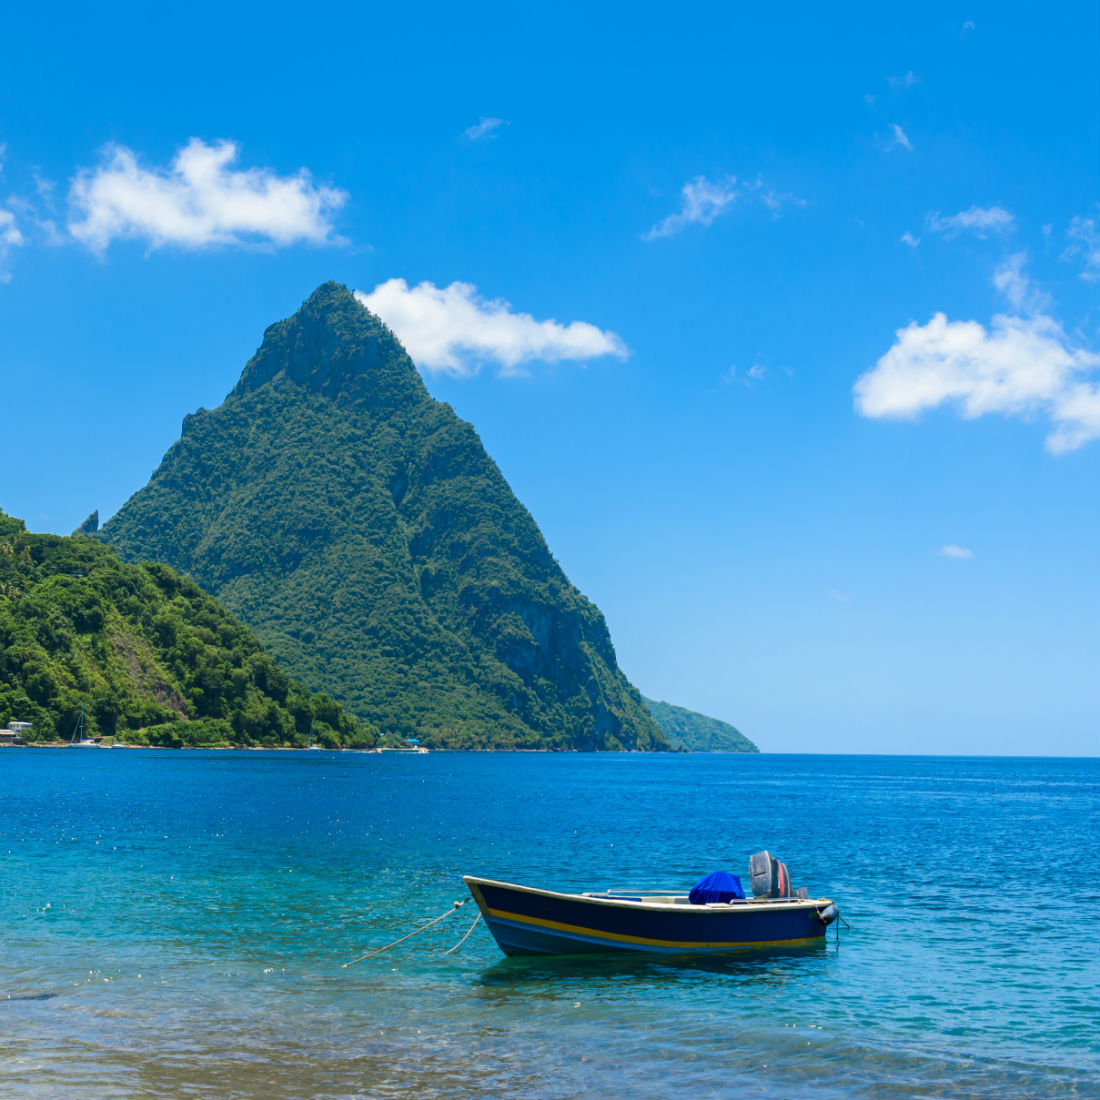 View of the Pitons, St Lucia